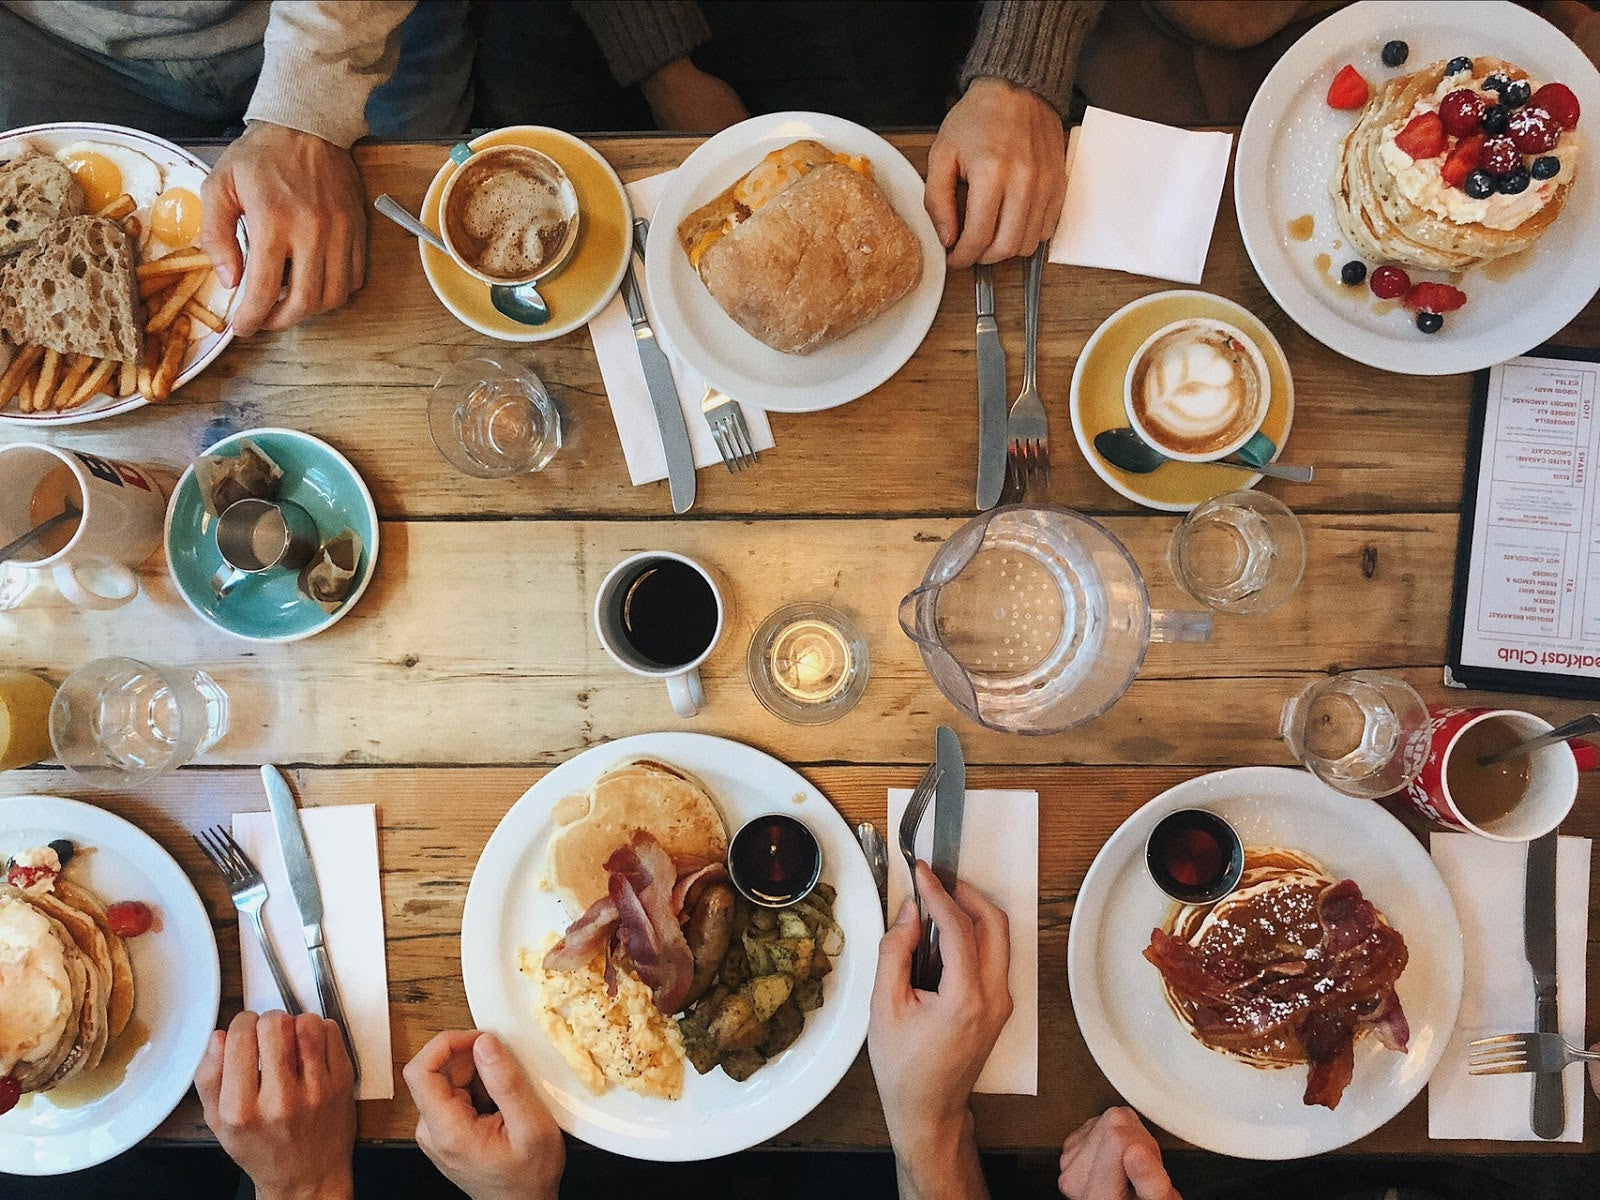 Best digestive enzymes: overhead view of people sitting at a table with plates of many different kinds of food